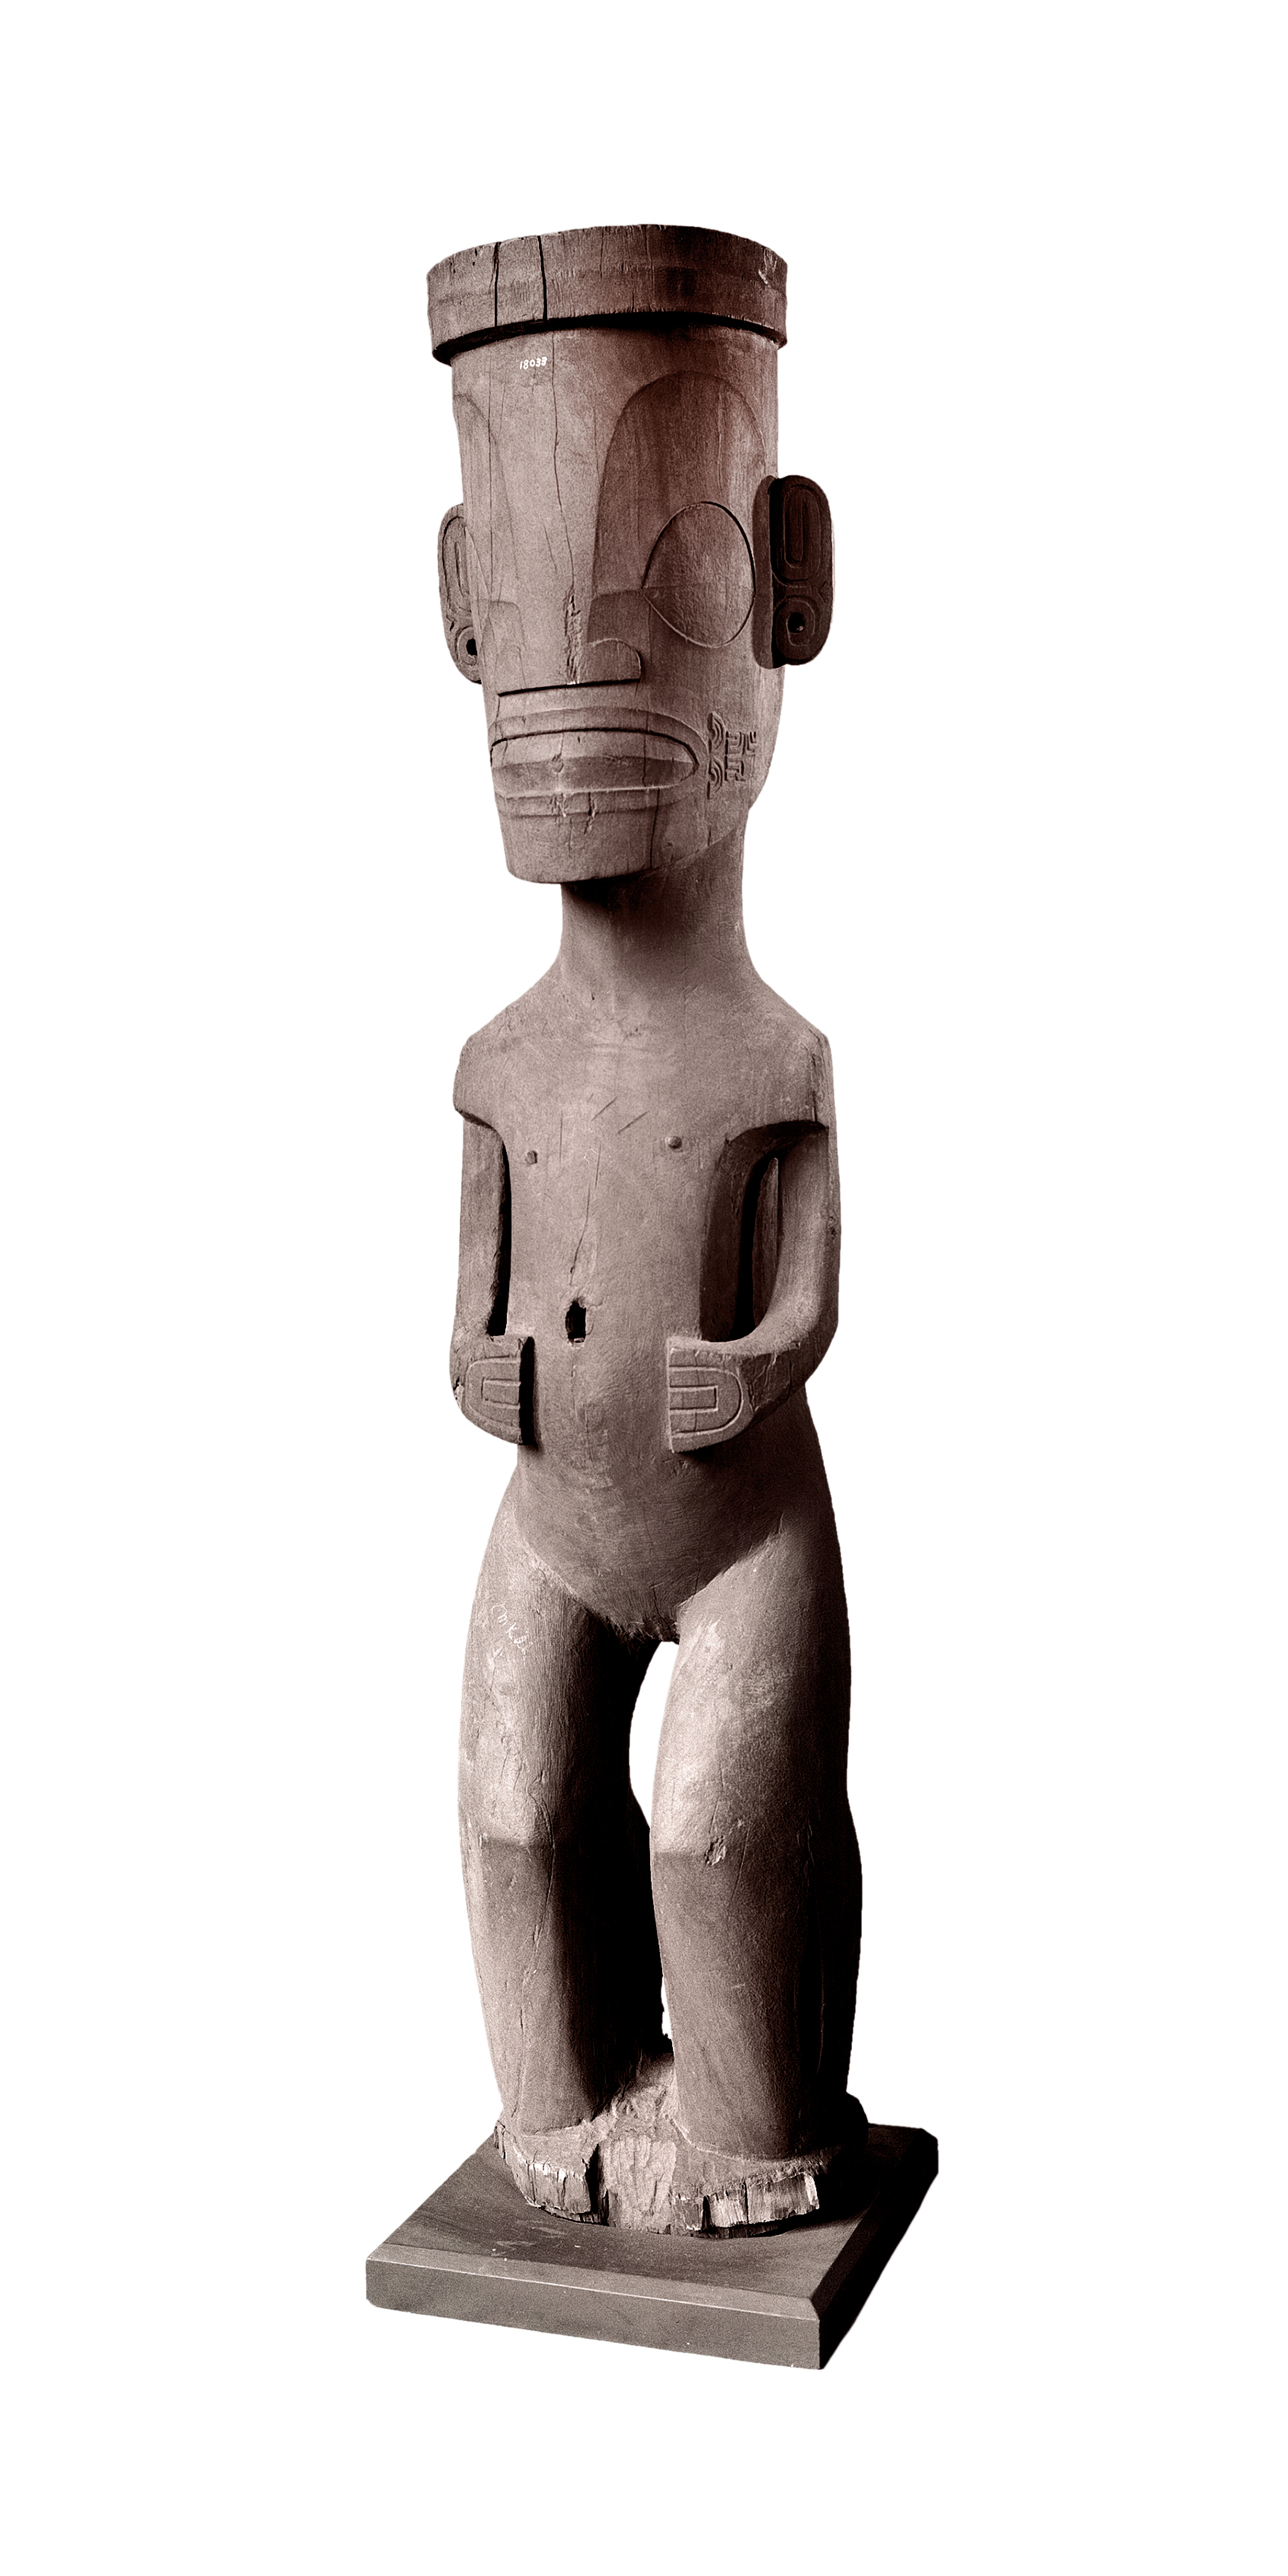 Tiki | Marquesas Islands © University of Pennsylvania Museum of Archaeology and Anthropology